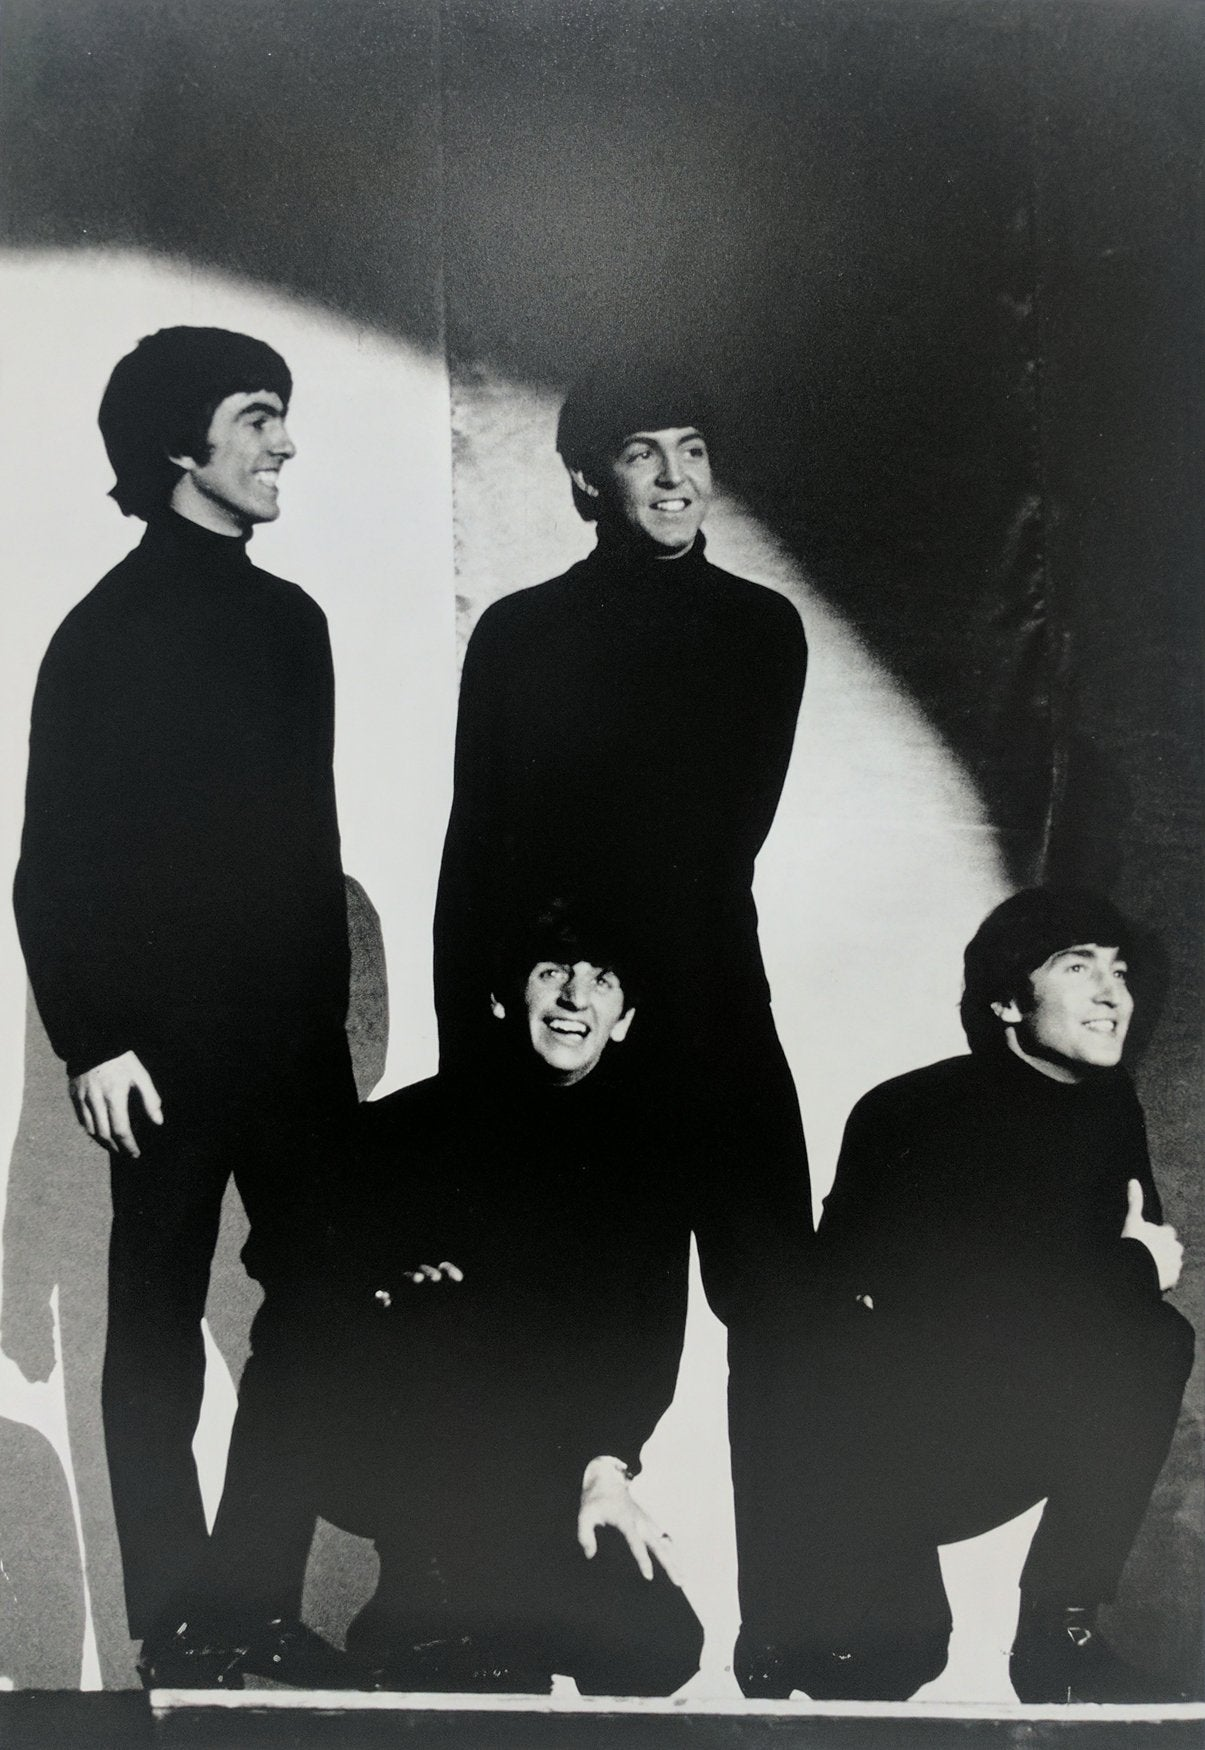 Shahrokh Hatami, The Beatles, Liverpool Black and White - RoGallery